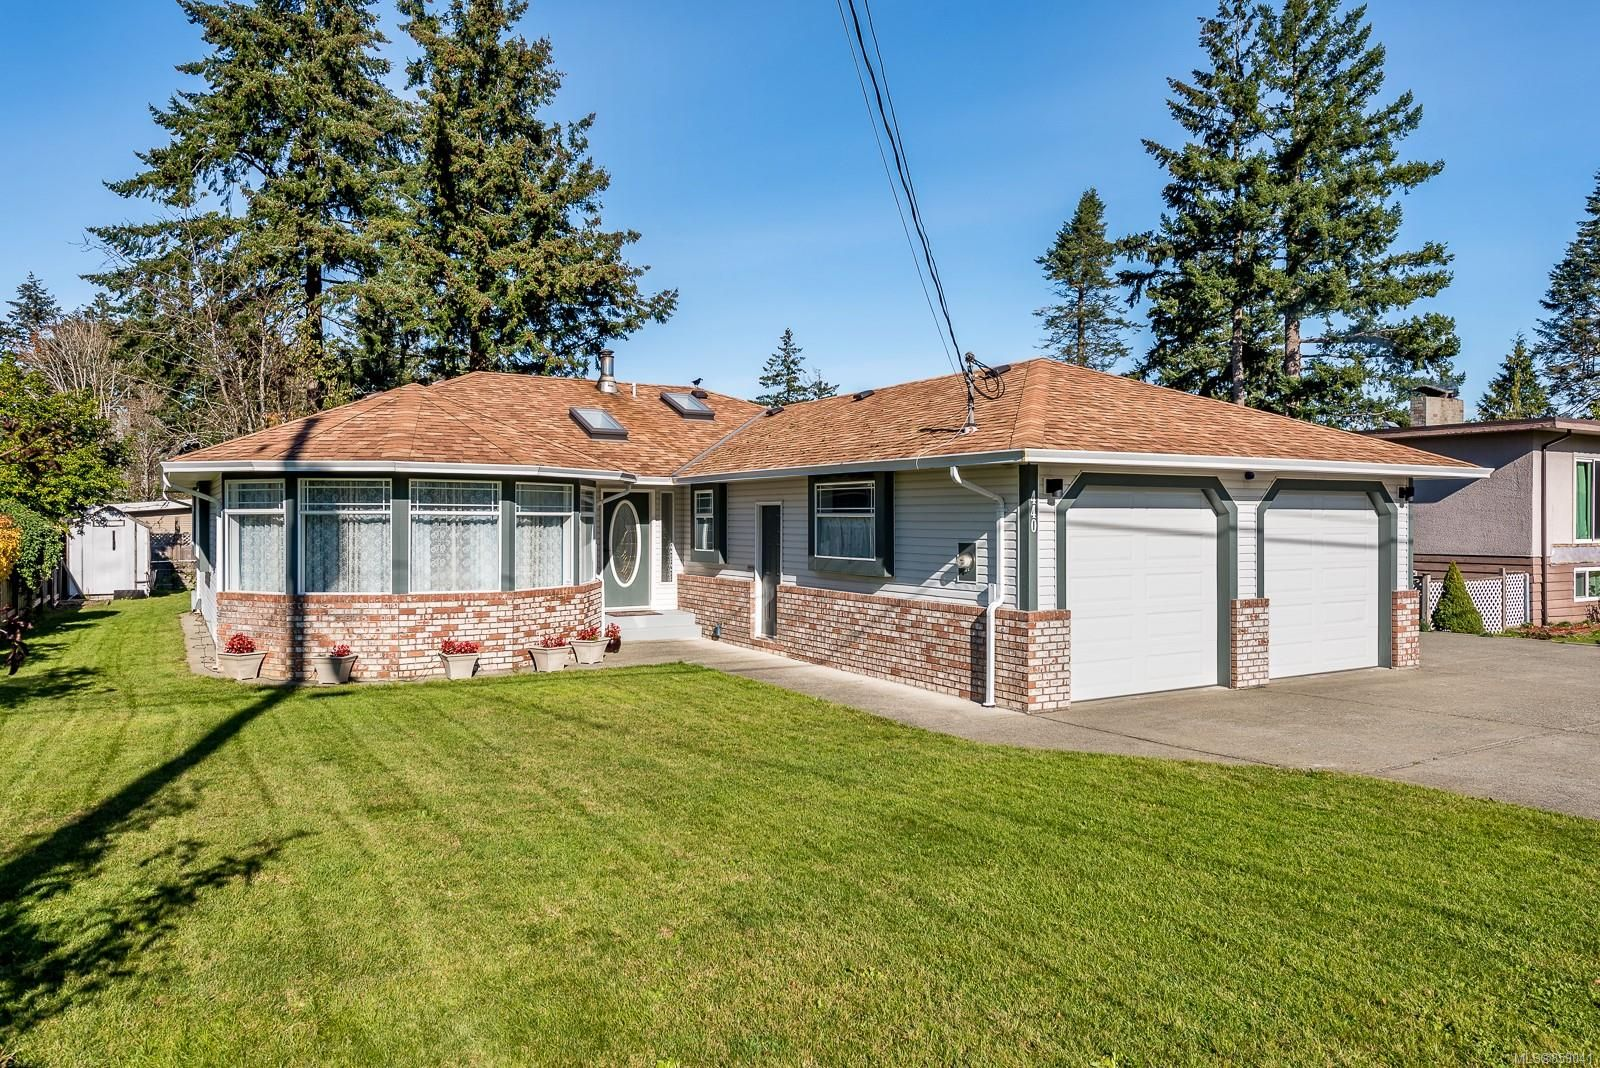 Main Photo: 440 Elizabeth Rd in : CR Campbell River Central House for sale (Campbell River)  : MLS®# 859041